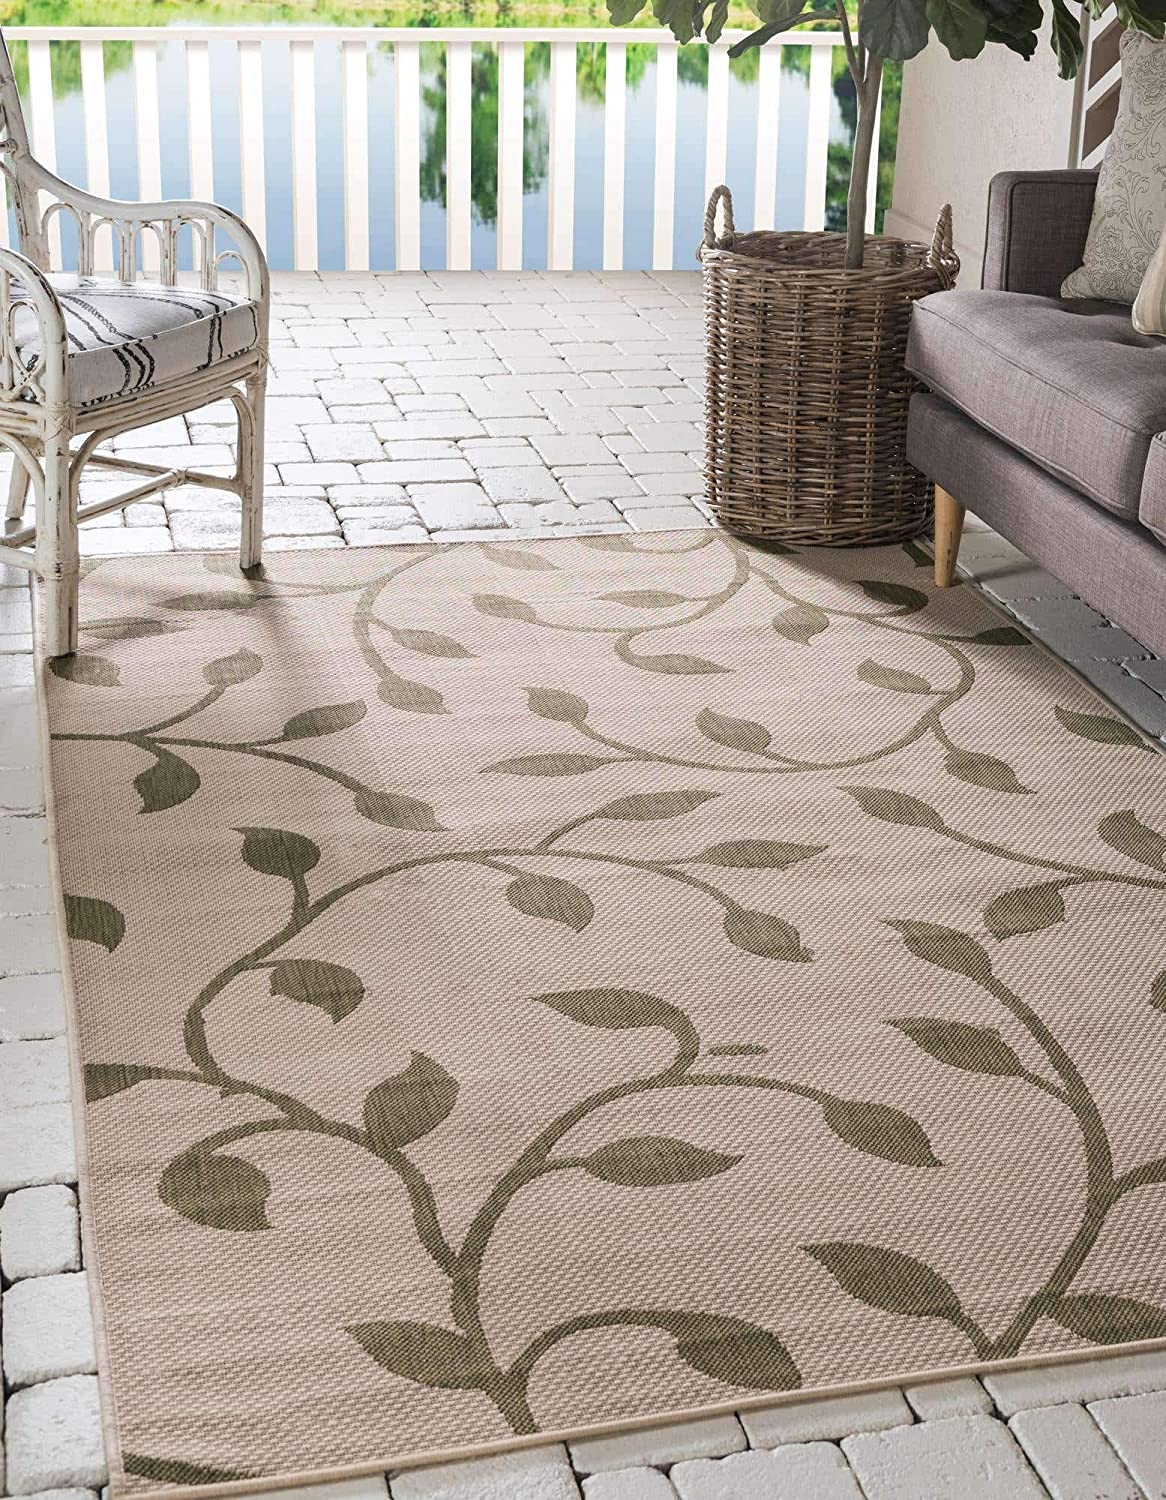 Max 54% OFF Unique Easy-to-use Loom Botanical Collection Transitional Indoo Vines Floral